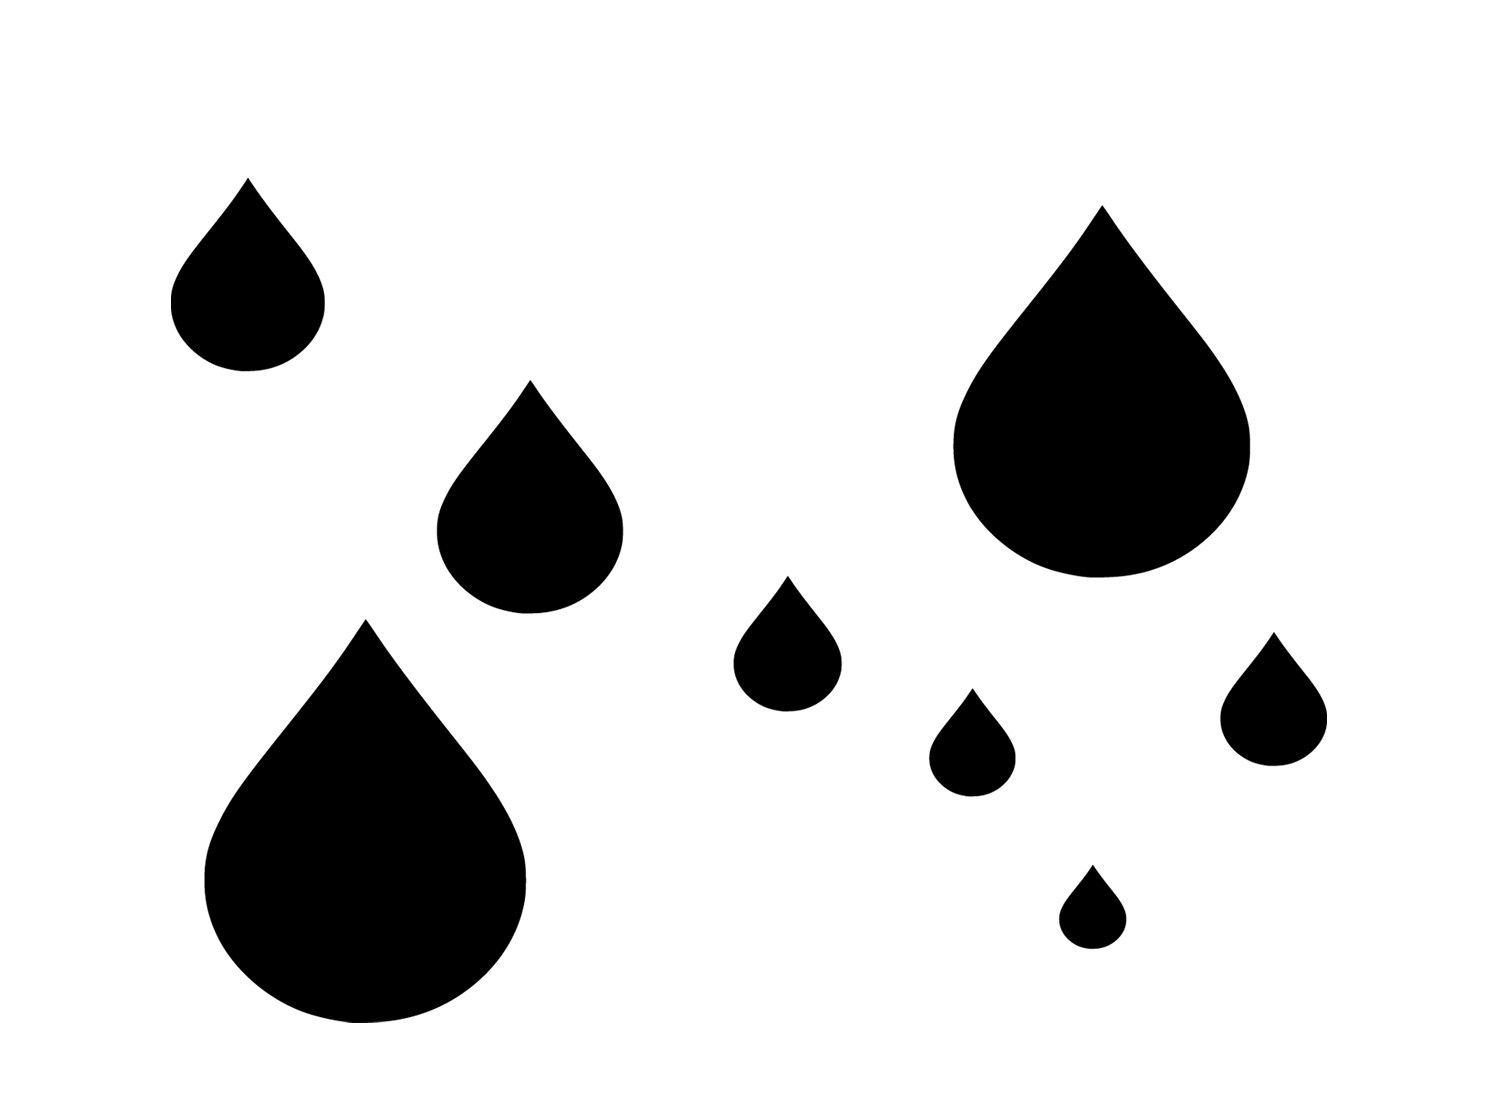 Raindrop template clipart